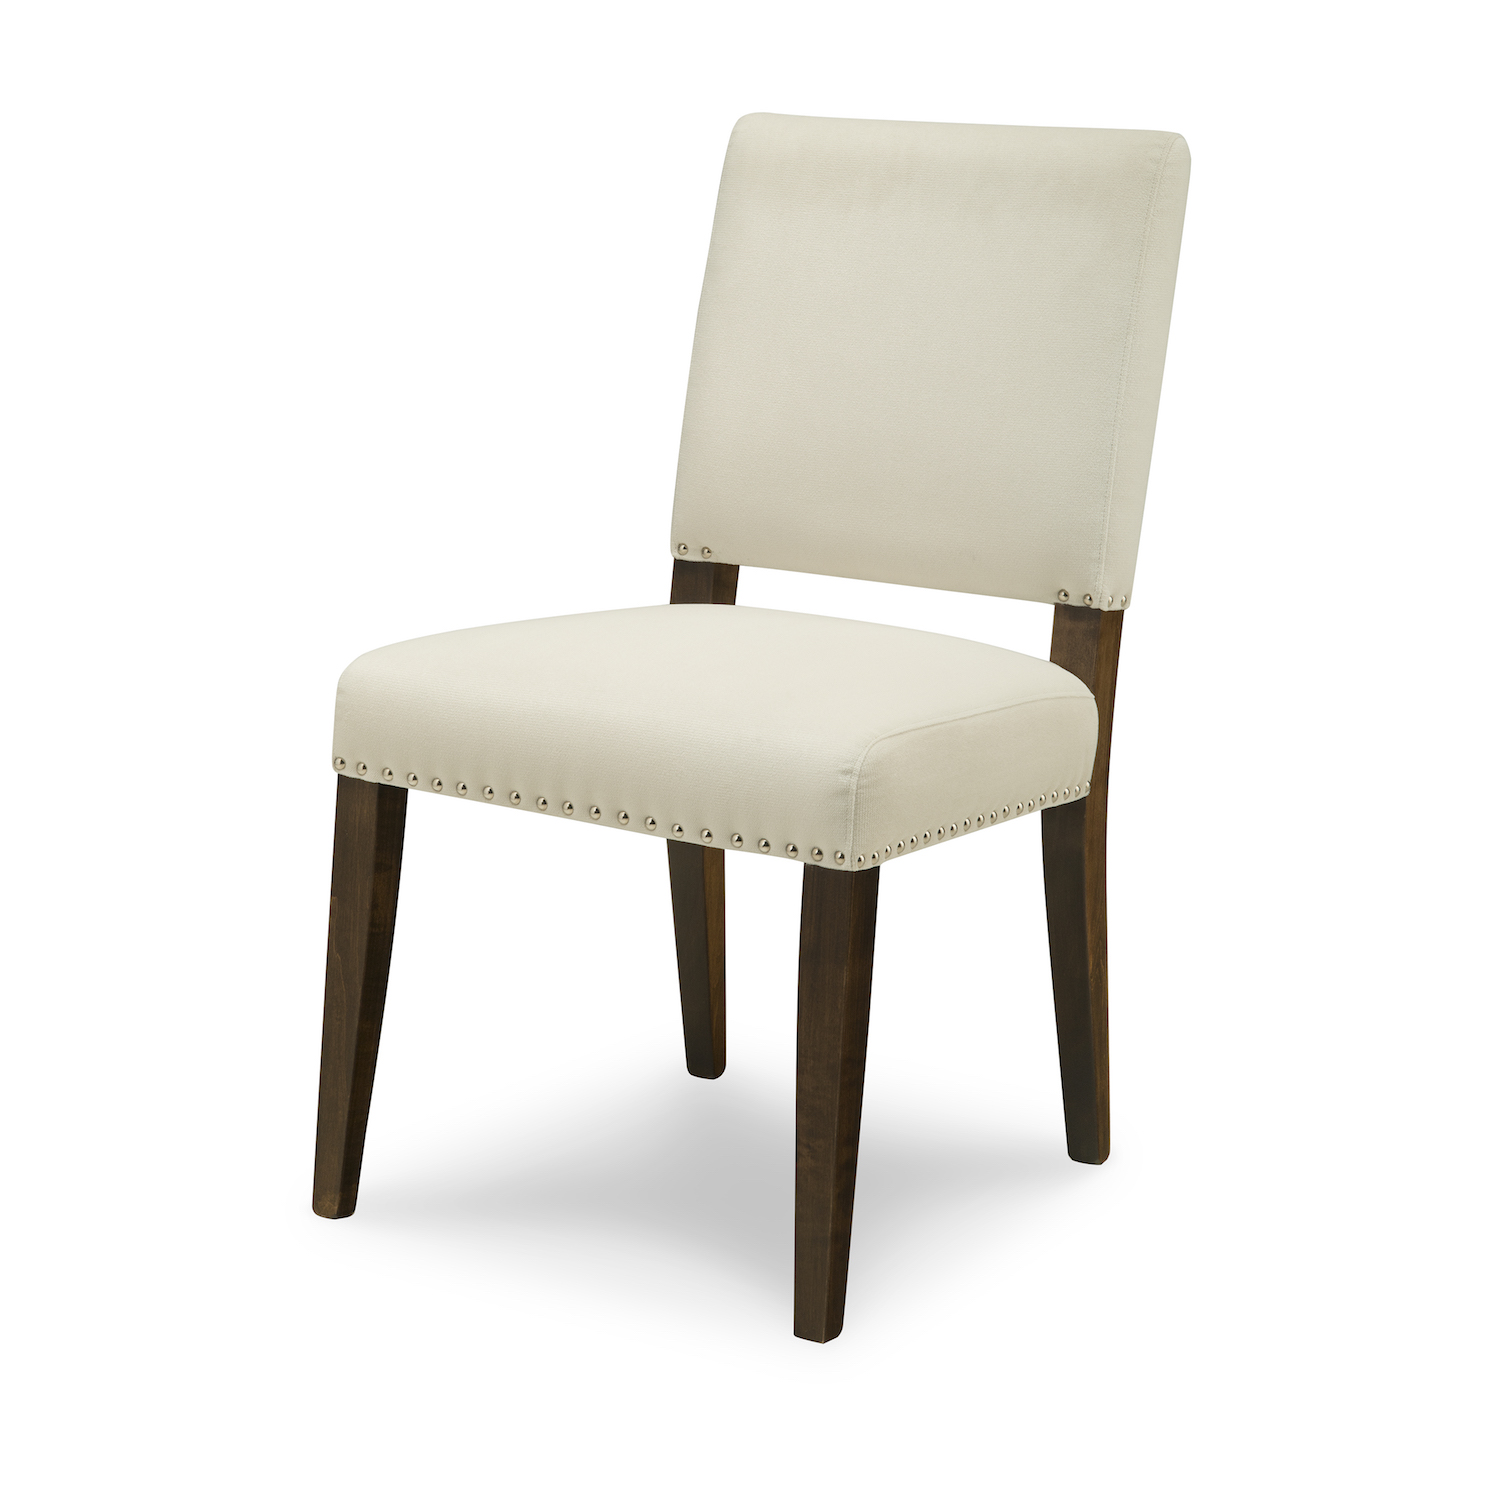 Tristan_Chair_Front_Angled-2-1.jpg